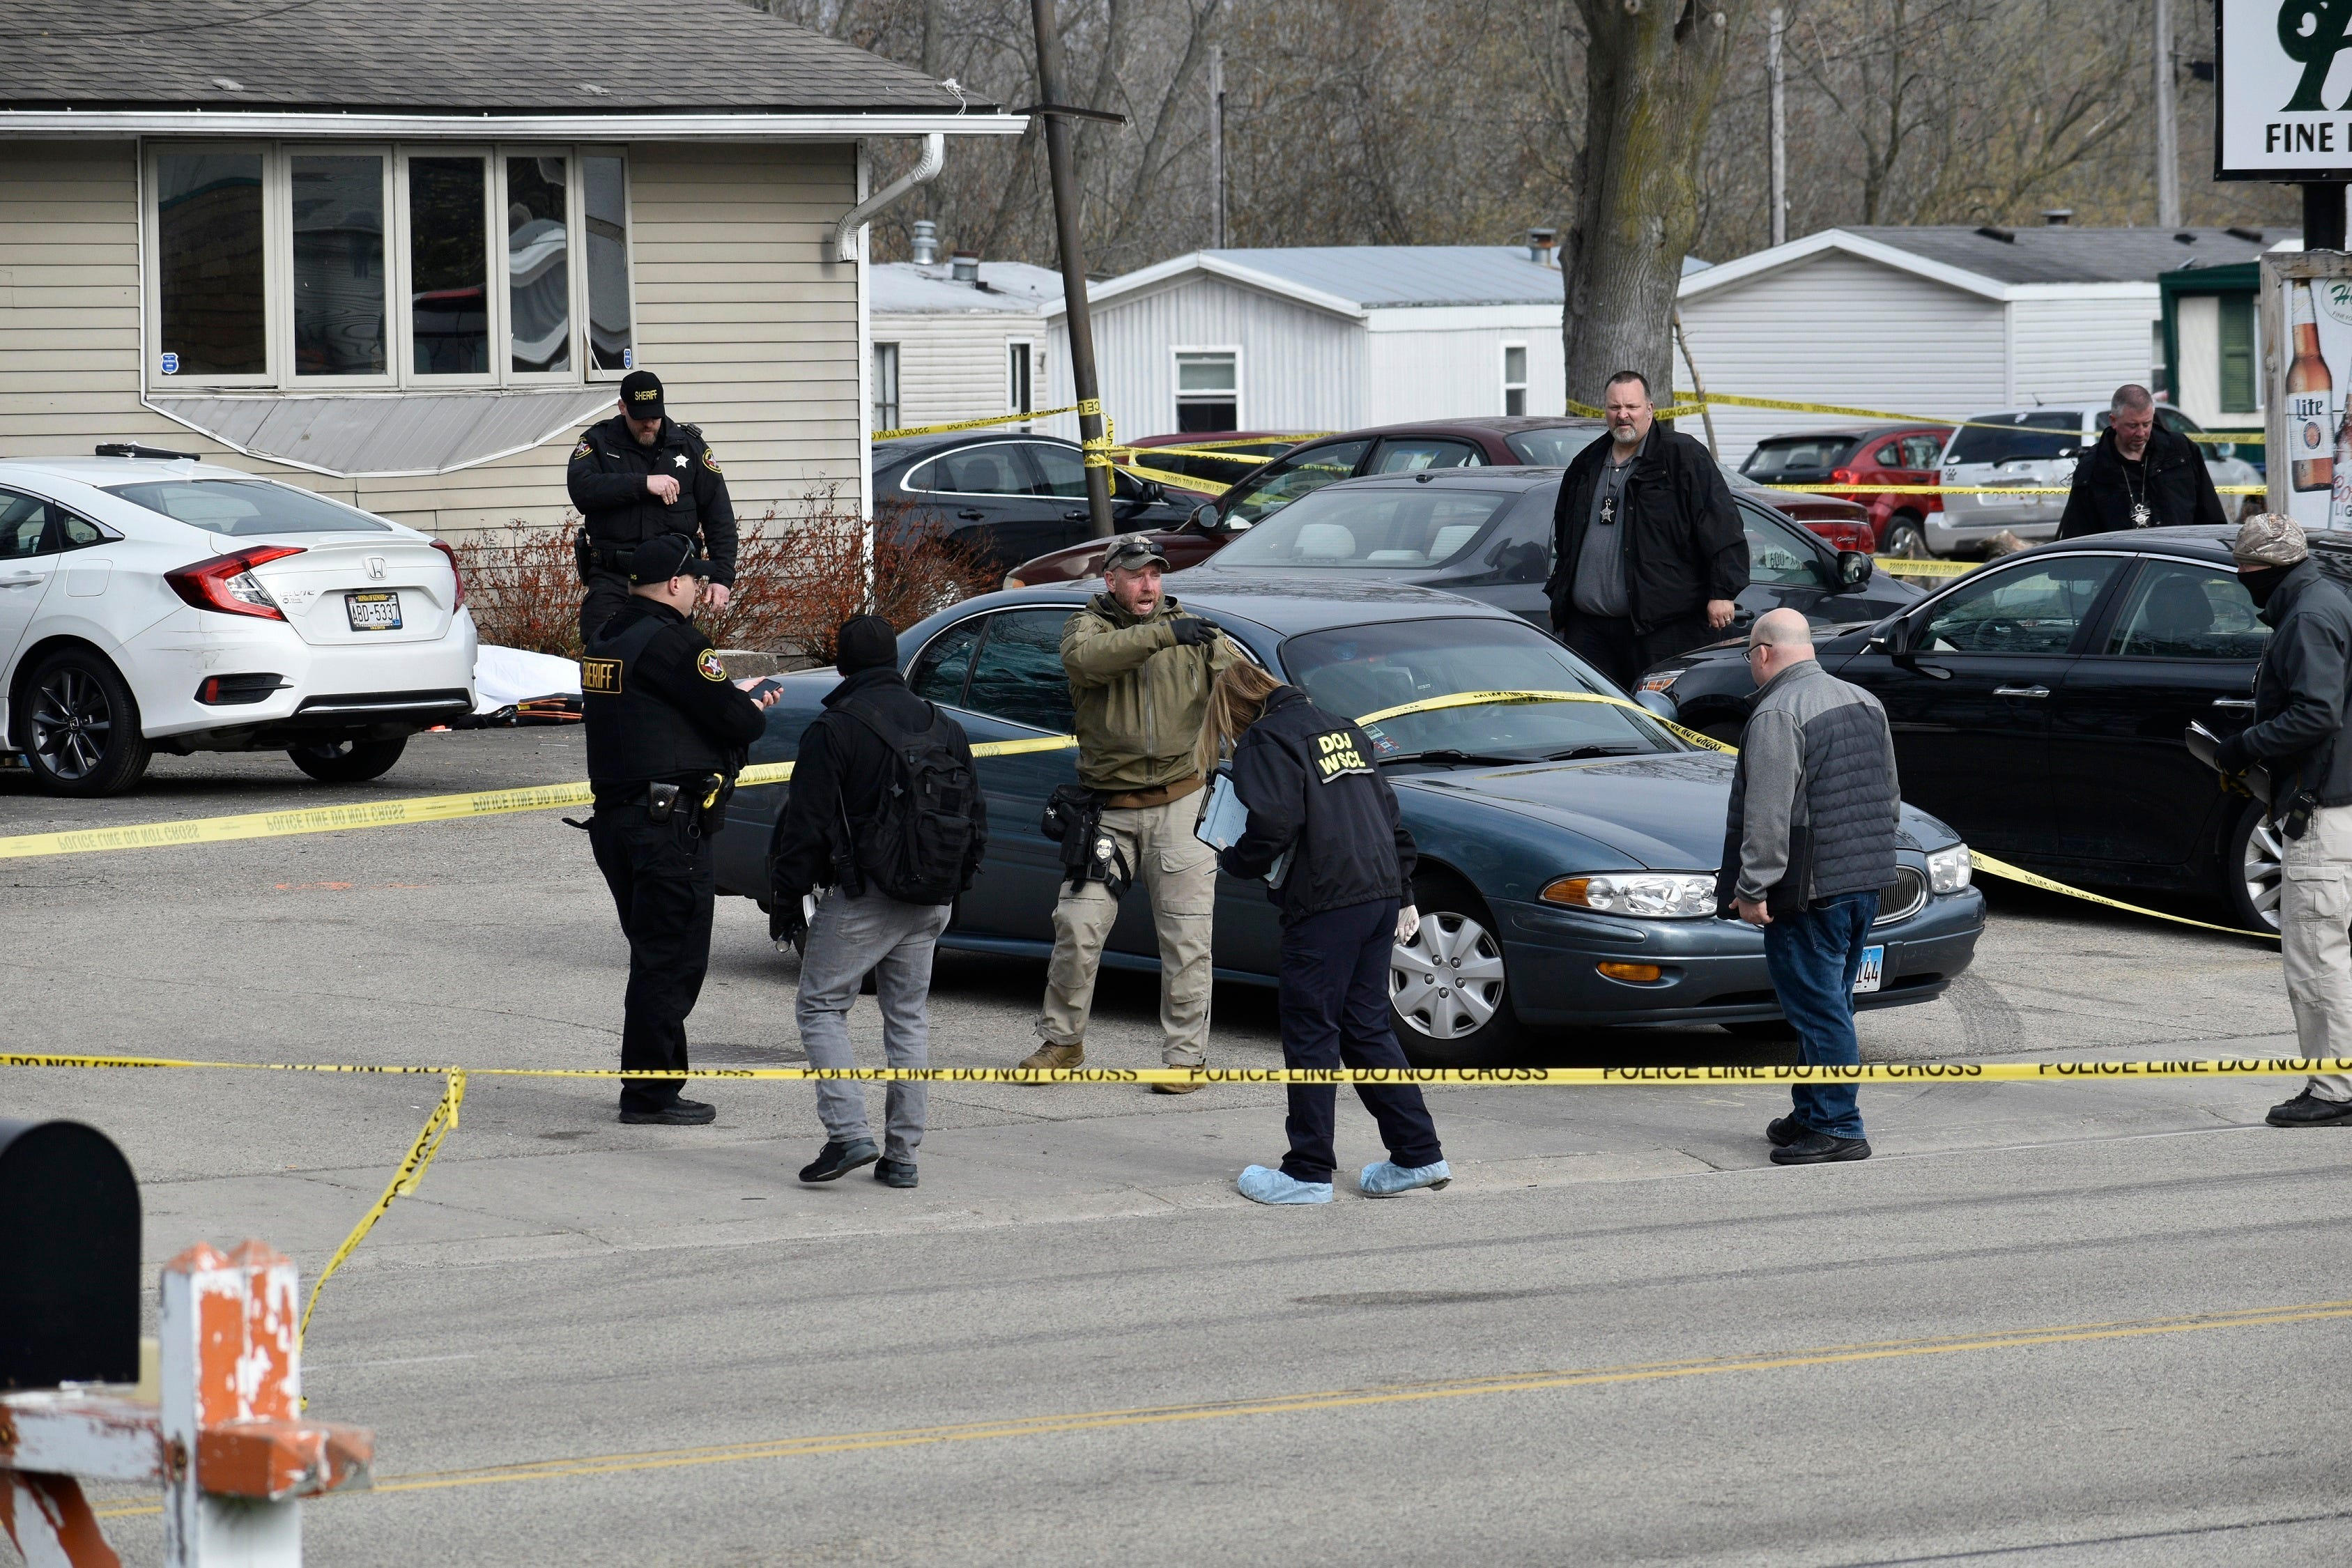 Suspect apprehended in fatal shooting at Wisconsin tavern 1